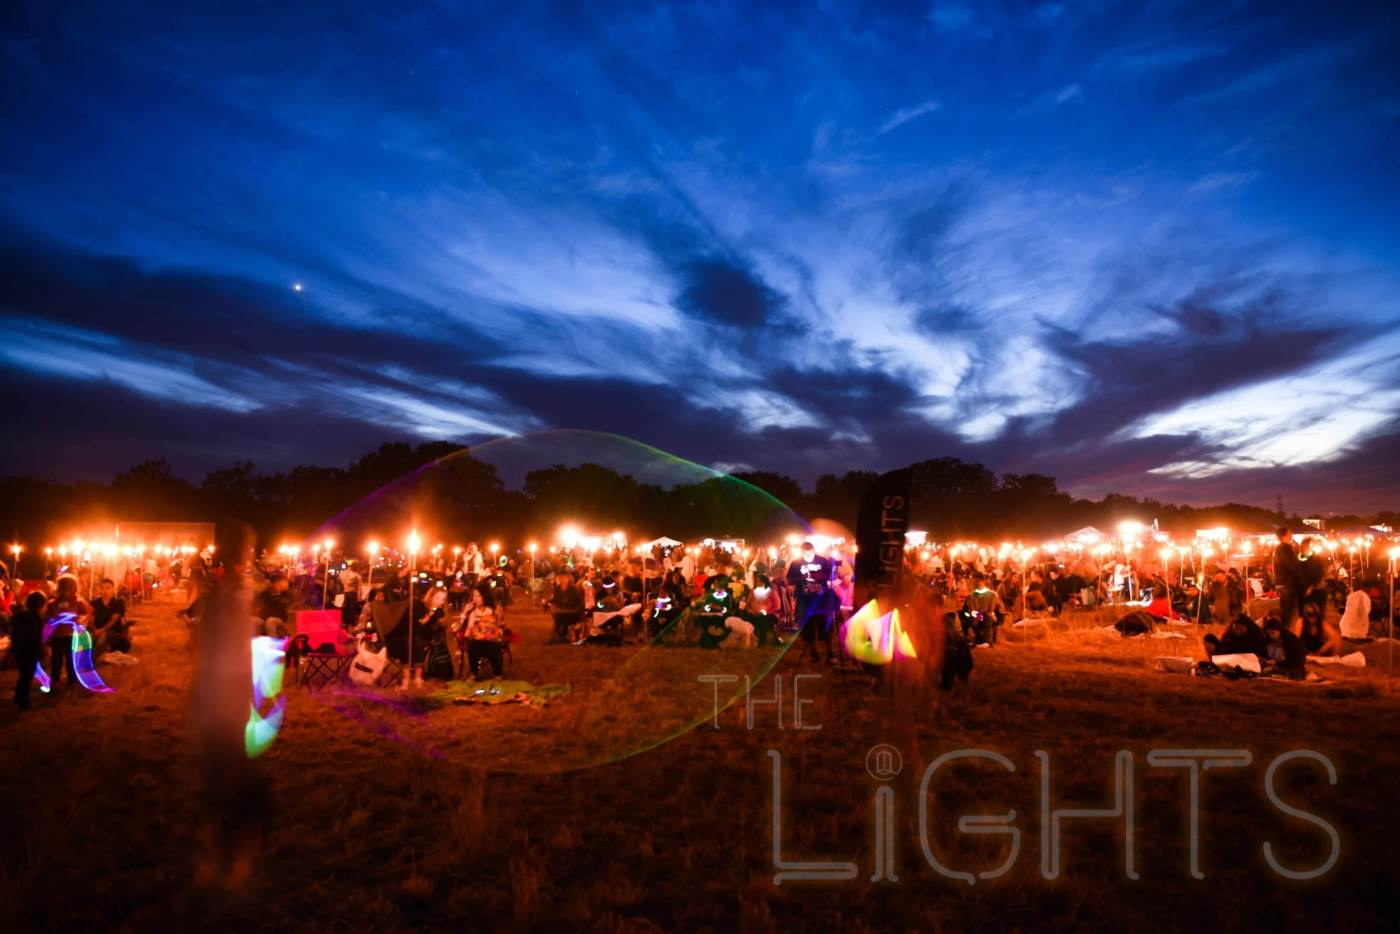 Tiki torches light the grounds as festival goers wait for nightfall. (Photo via The Lights Fest)